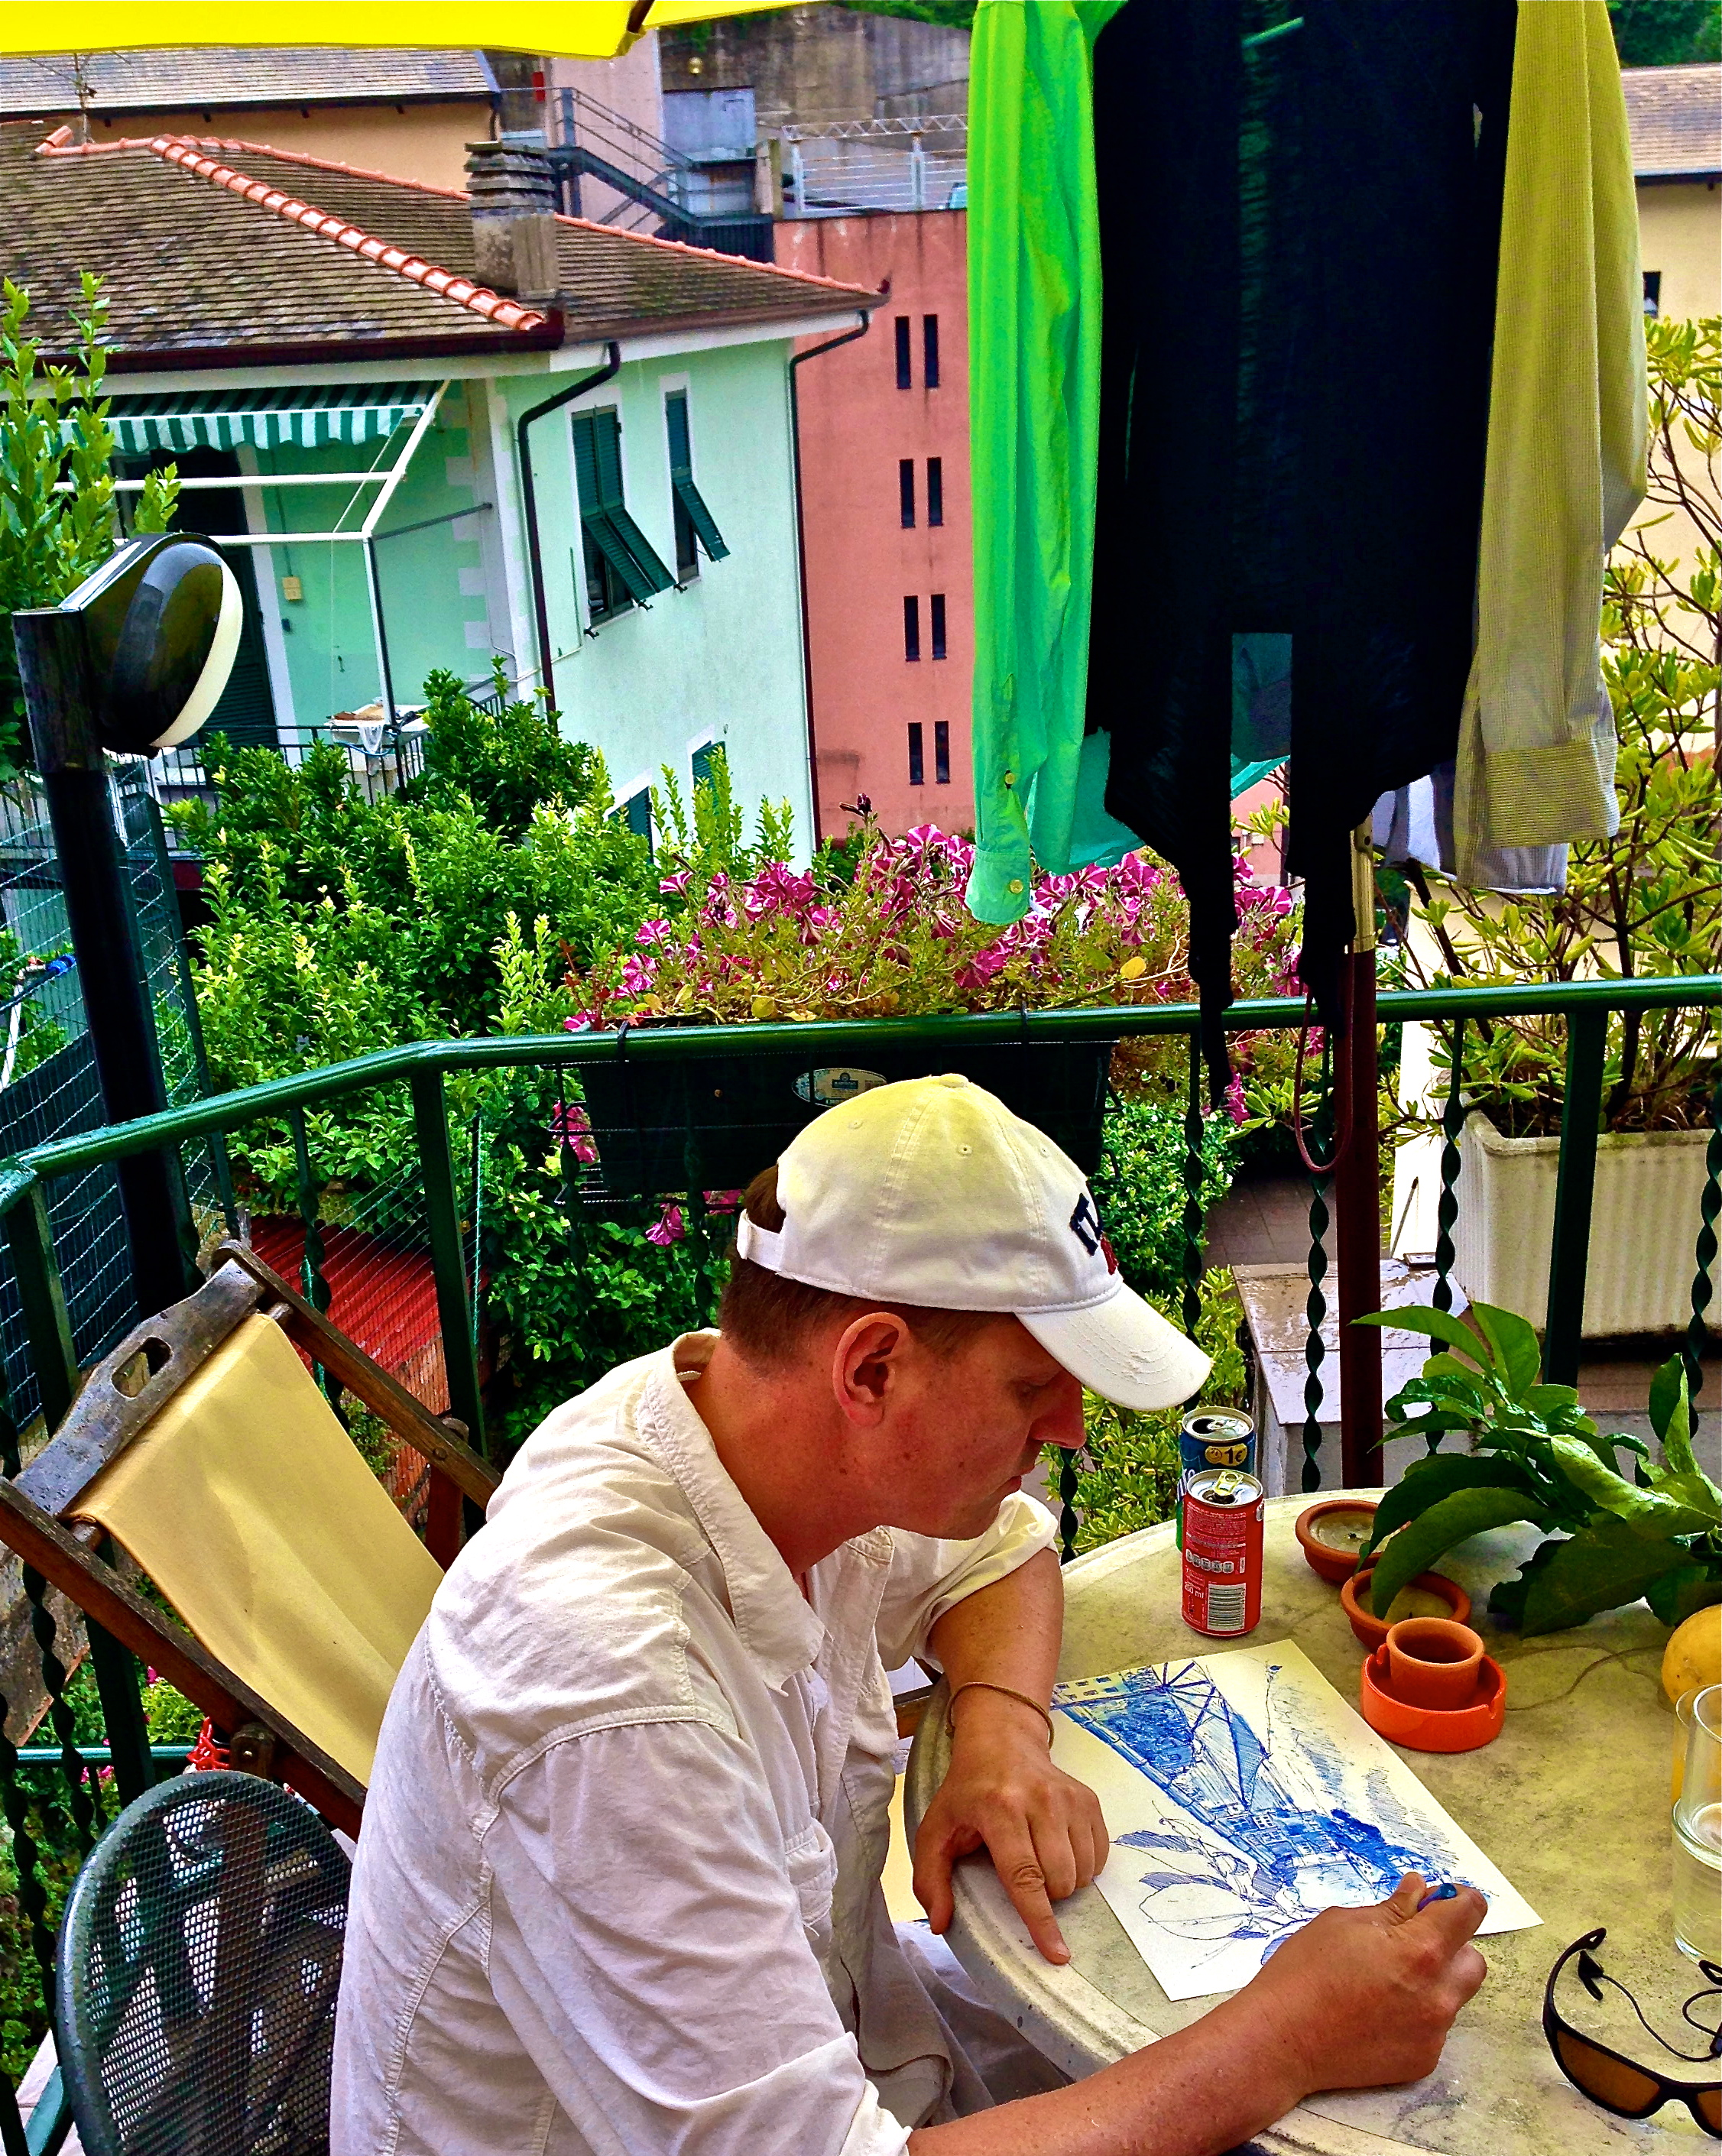 Paul, 'accidentally' does first 'Blue Sketch' in Riomaggiorre, Italy in 2014